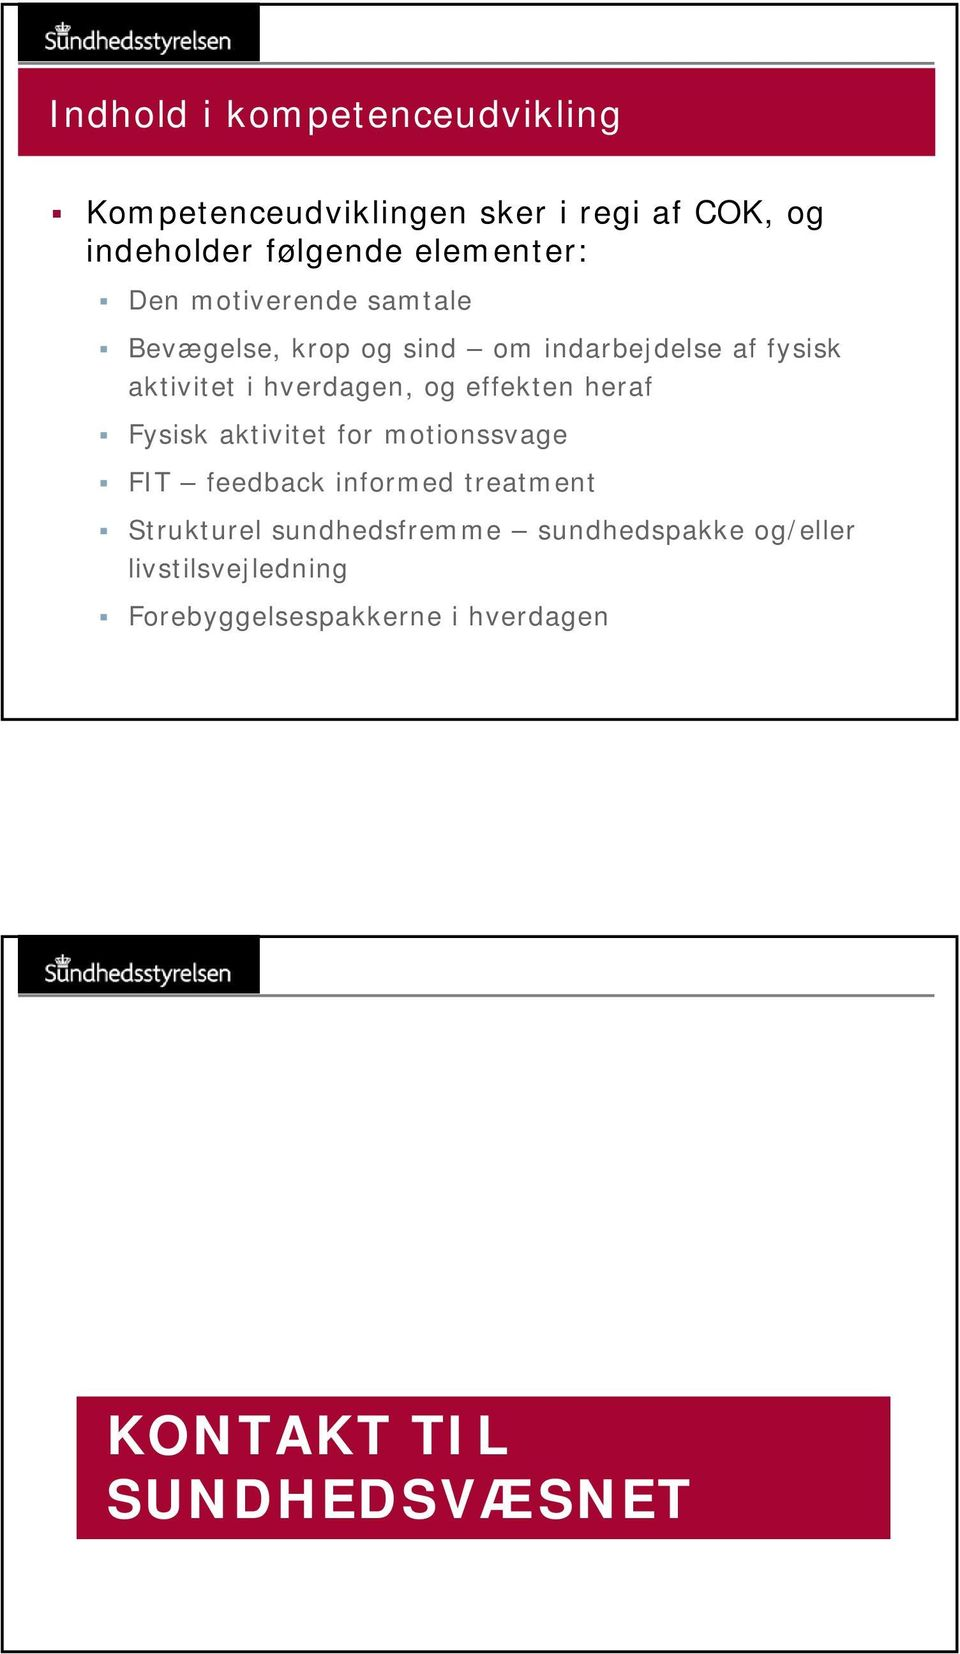 hverdagen, og effekten heraf Fysisk aktivitet for motionssvage FIT feedback informed treatment